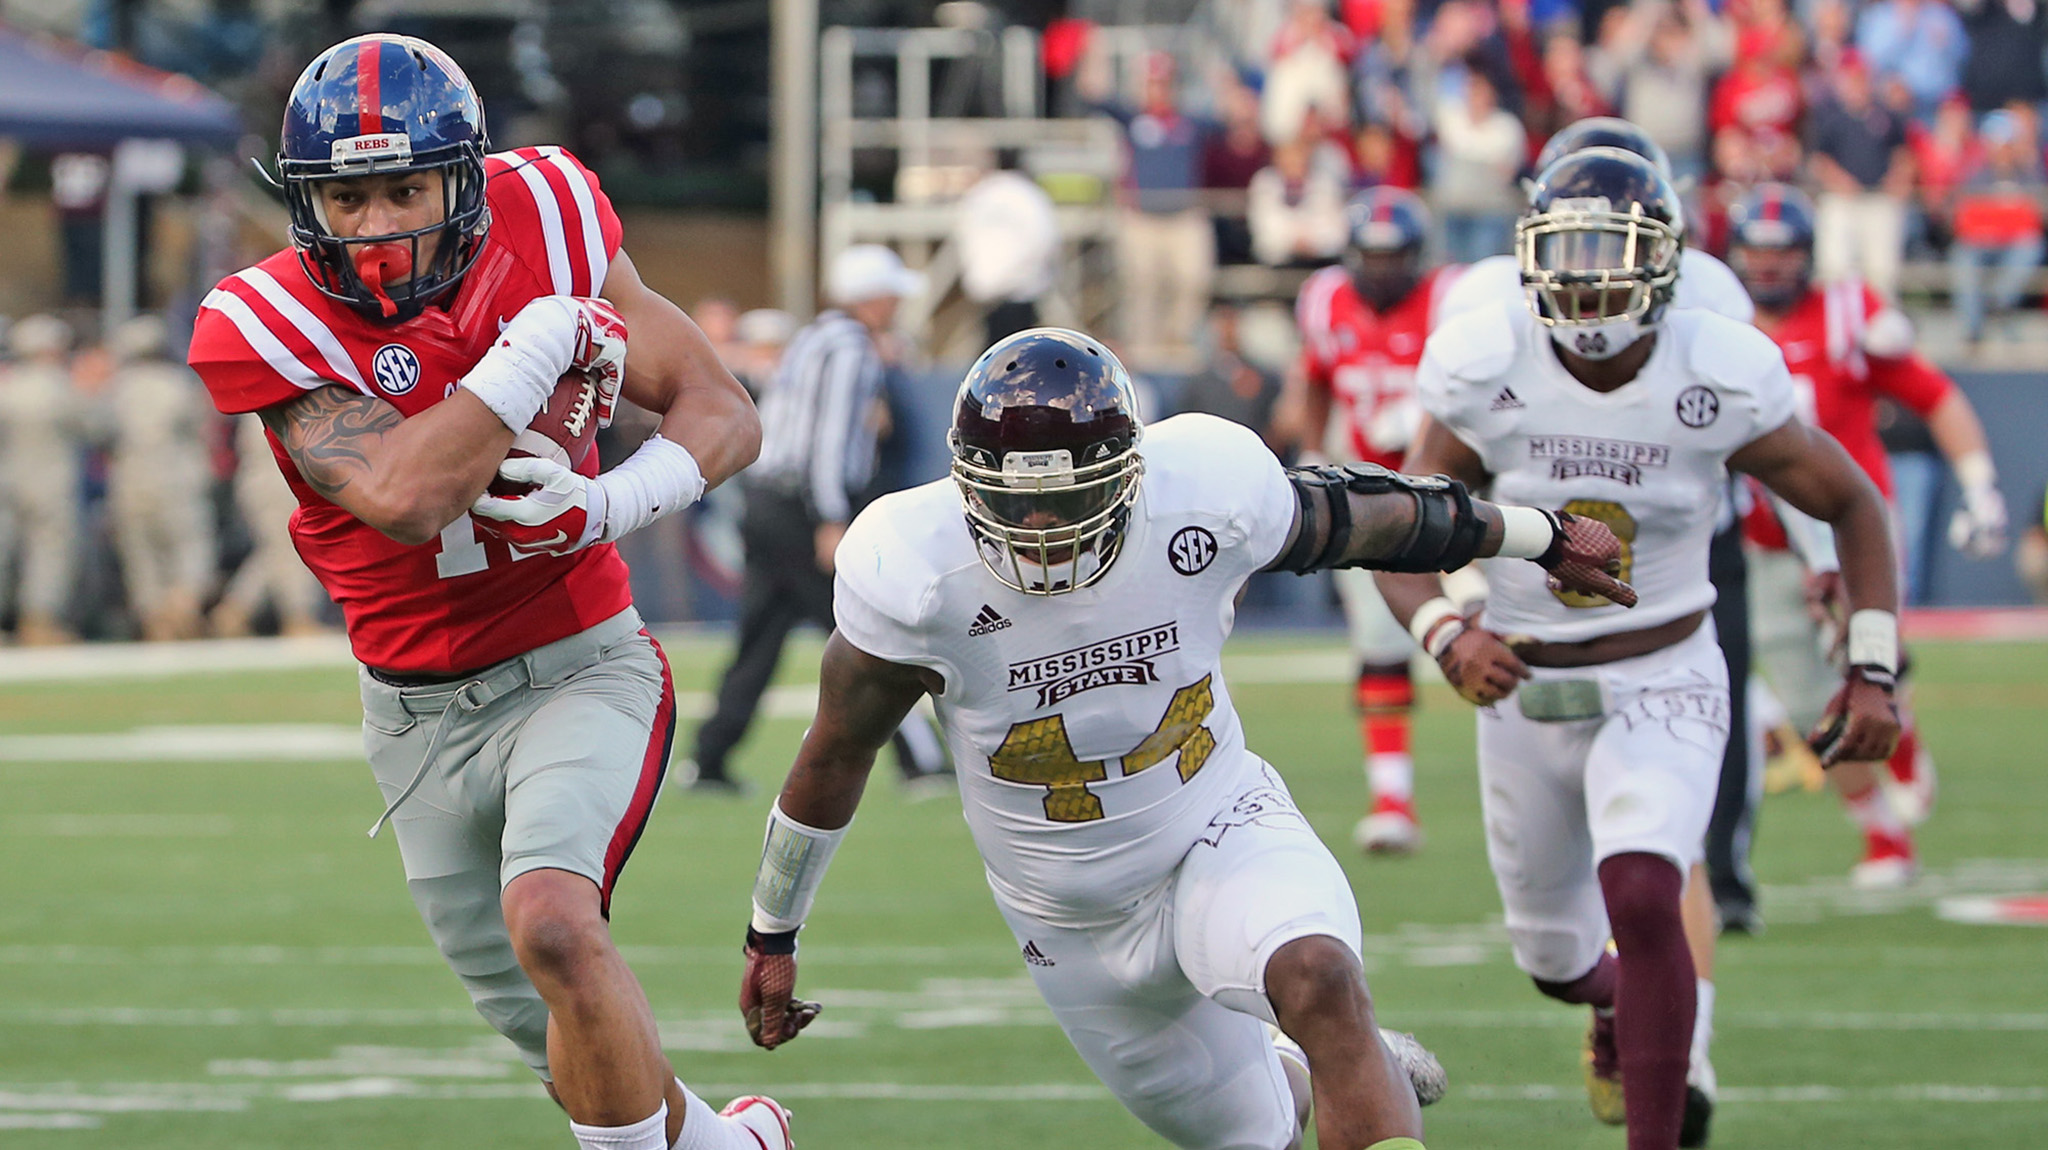 Ole Miss vs Mississippi State 2013 - YouTube